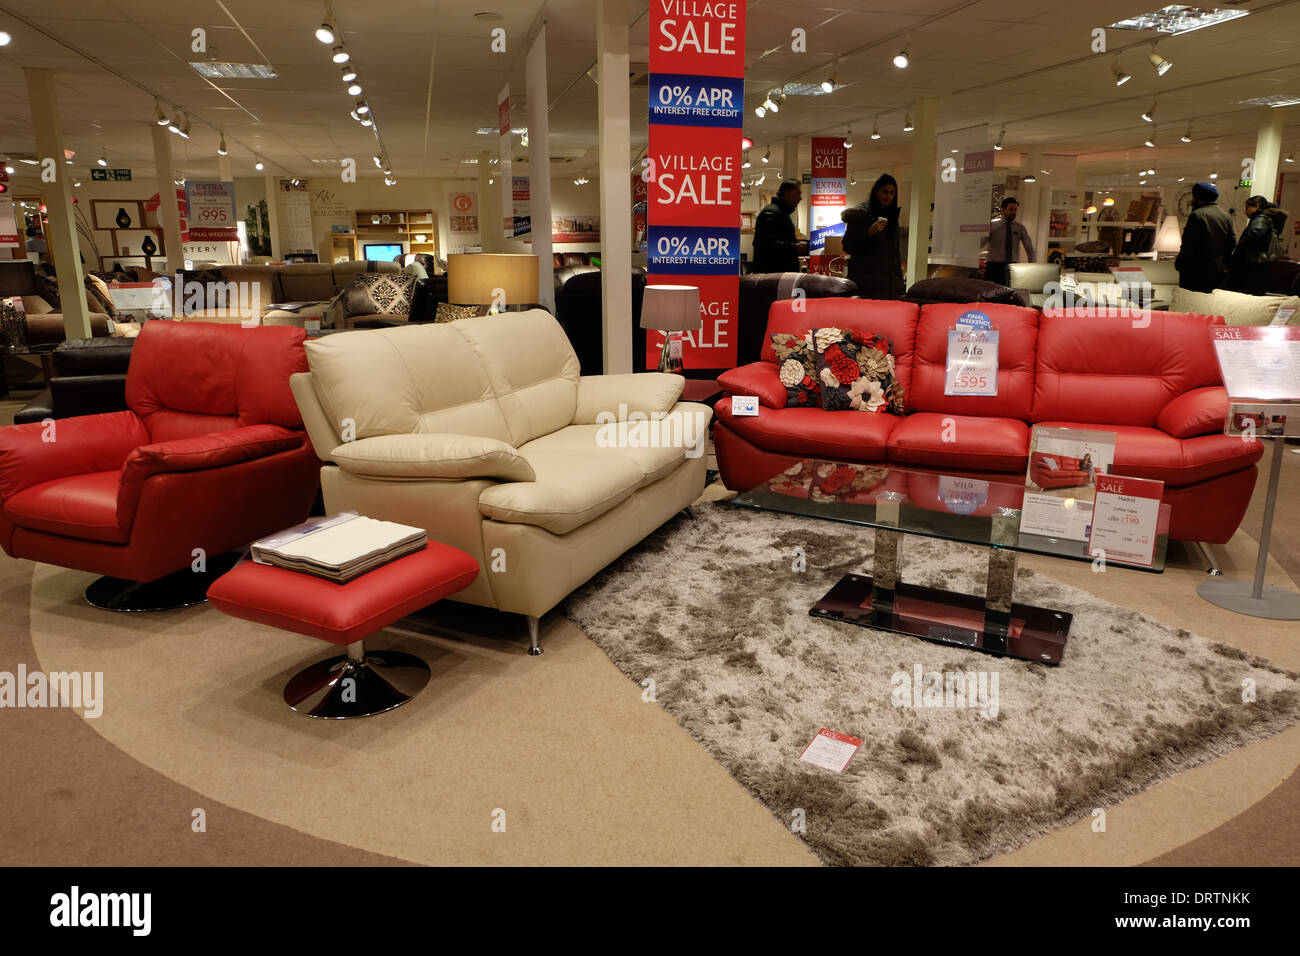 Interior of a furniture village shop in milton keynes for Furniture u village